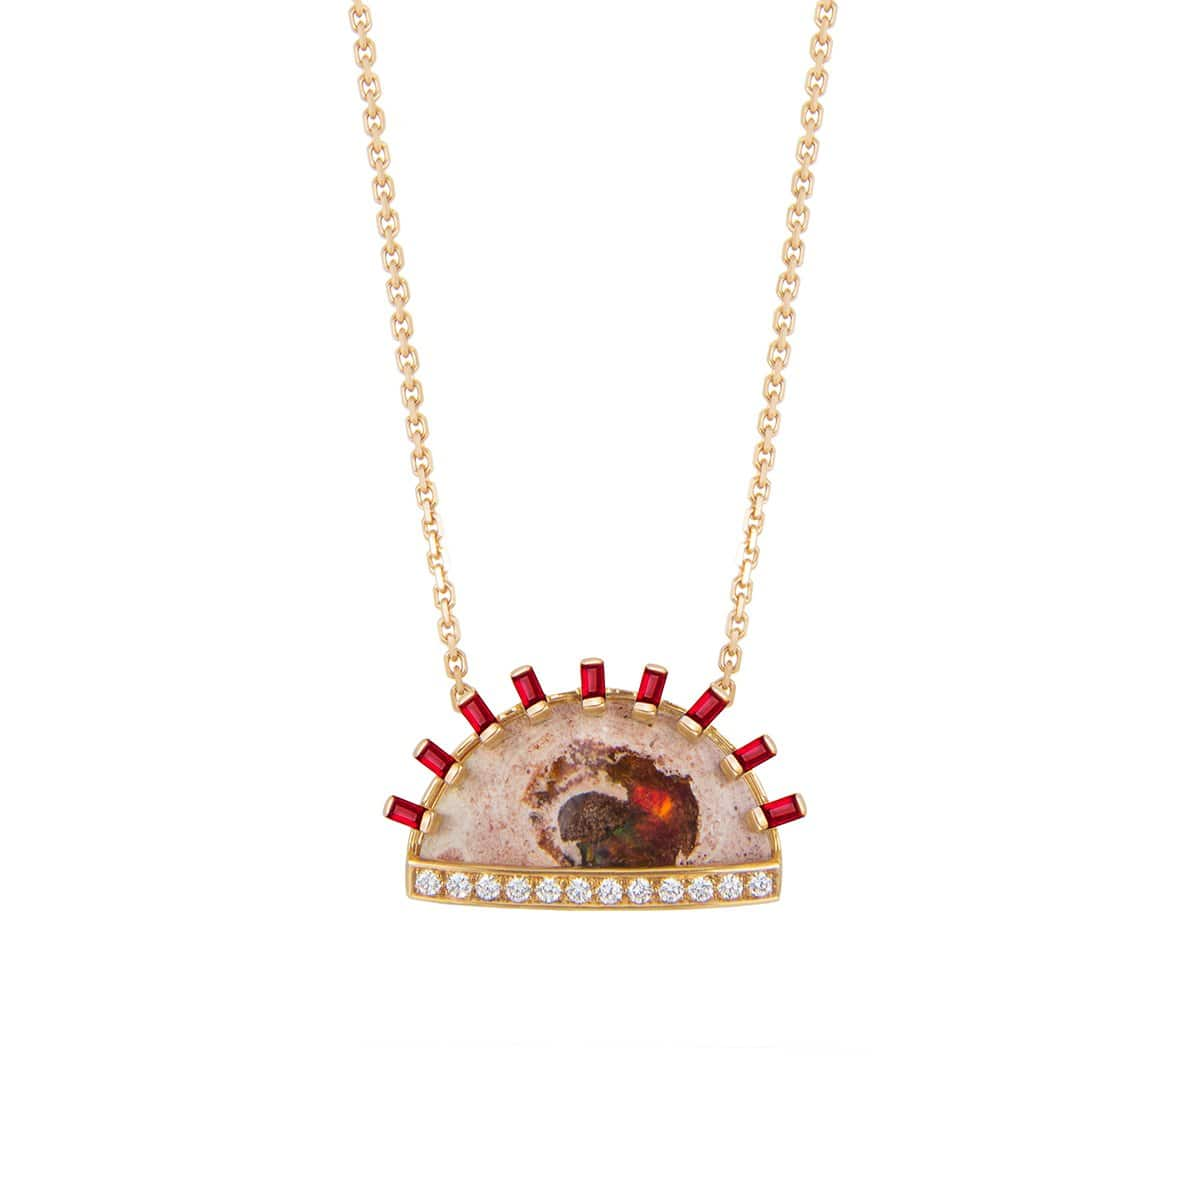 Opal in Matrix and Ruby Sunset Necklace - Curated Los Angeles